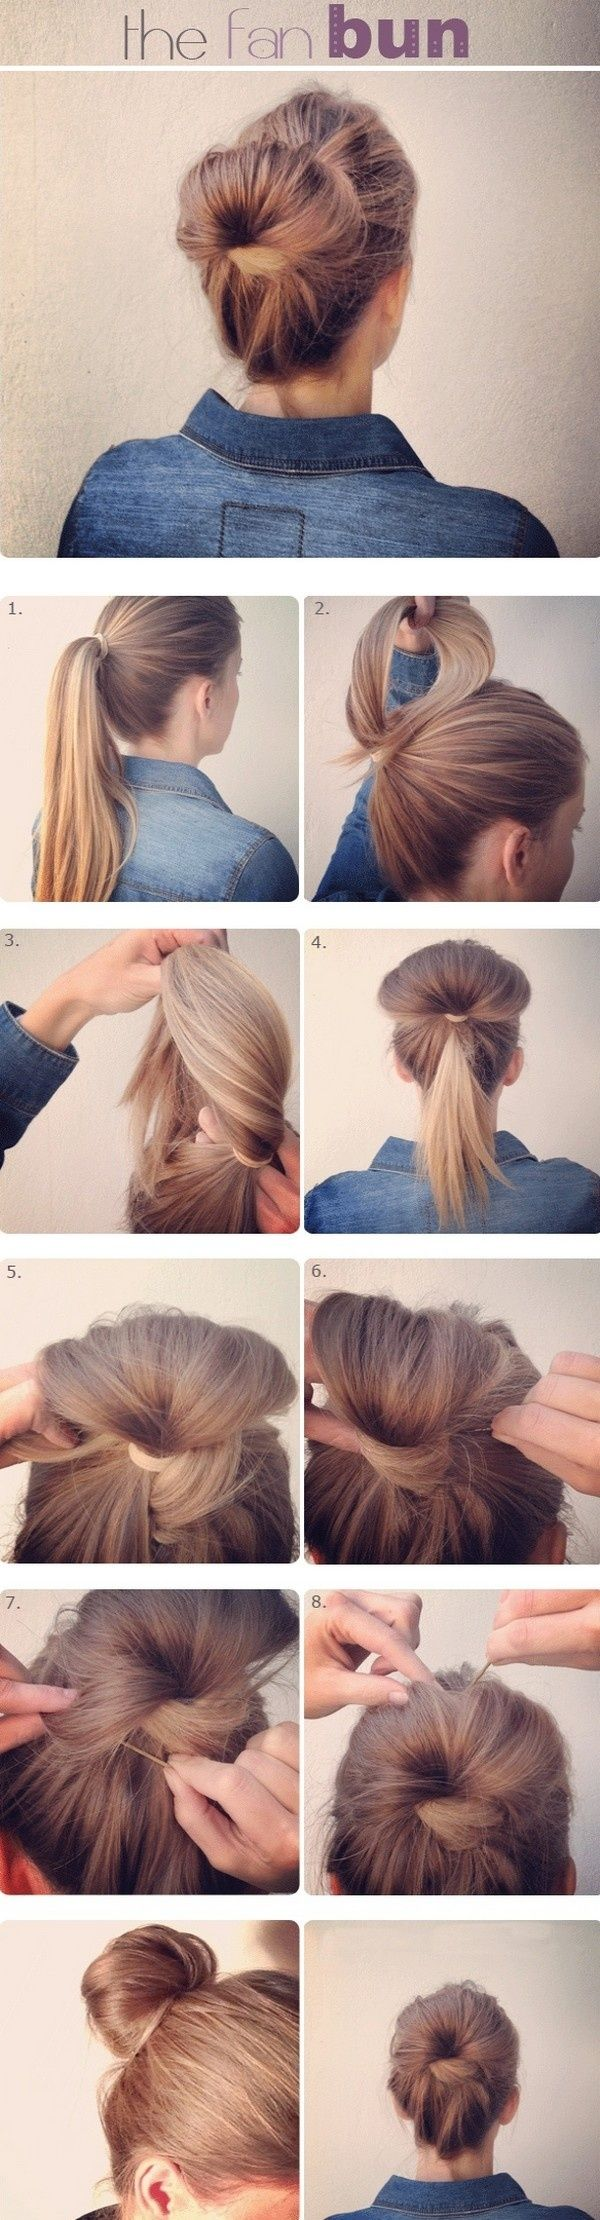 The best images about makeup hair u skin on pinterest cool